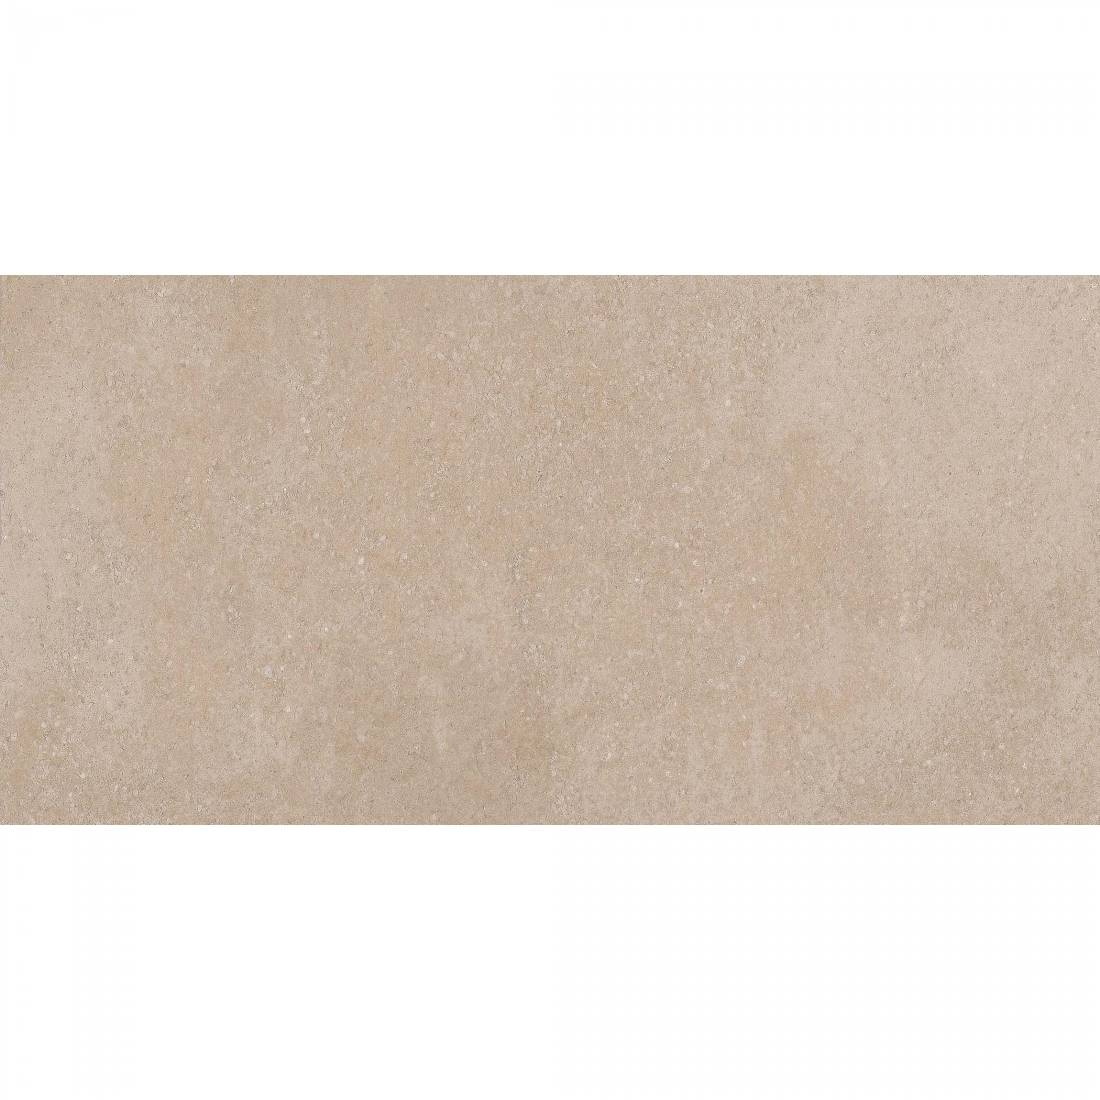 Autumn 30x60 Dark Beige Matt 1